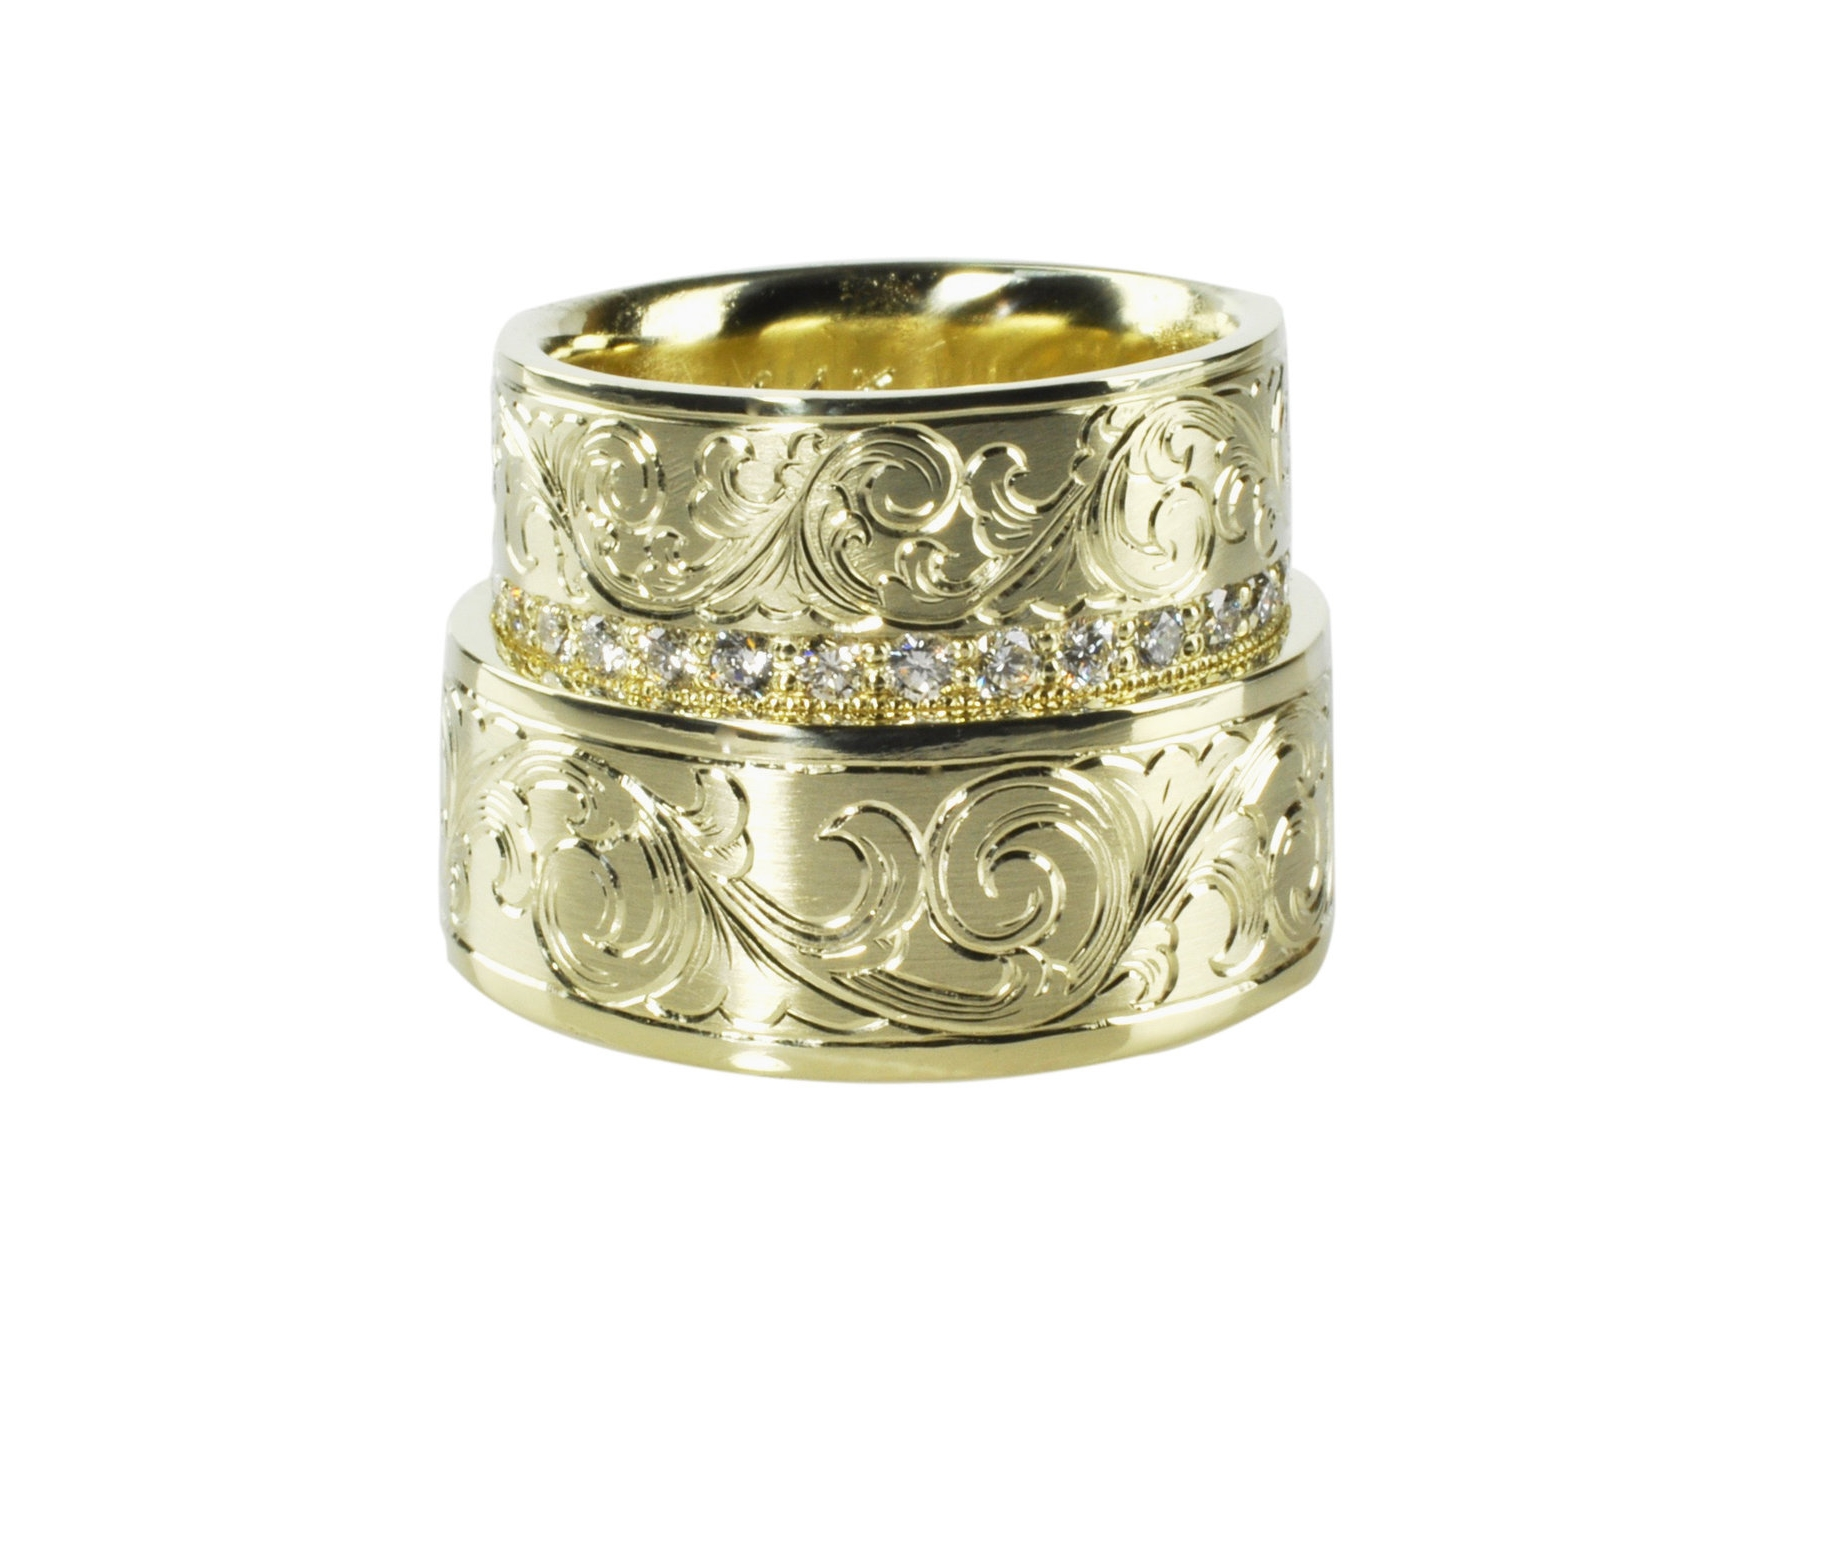 Hand Engraved 14K Green Gold Wedding Set with Diamonds